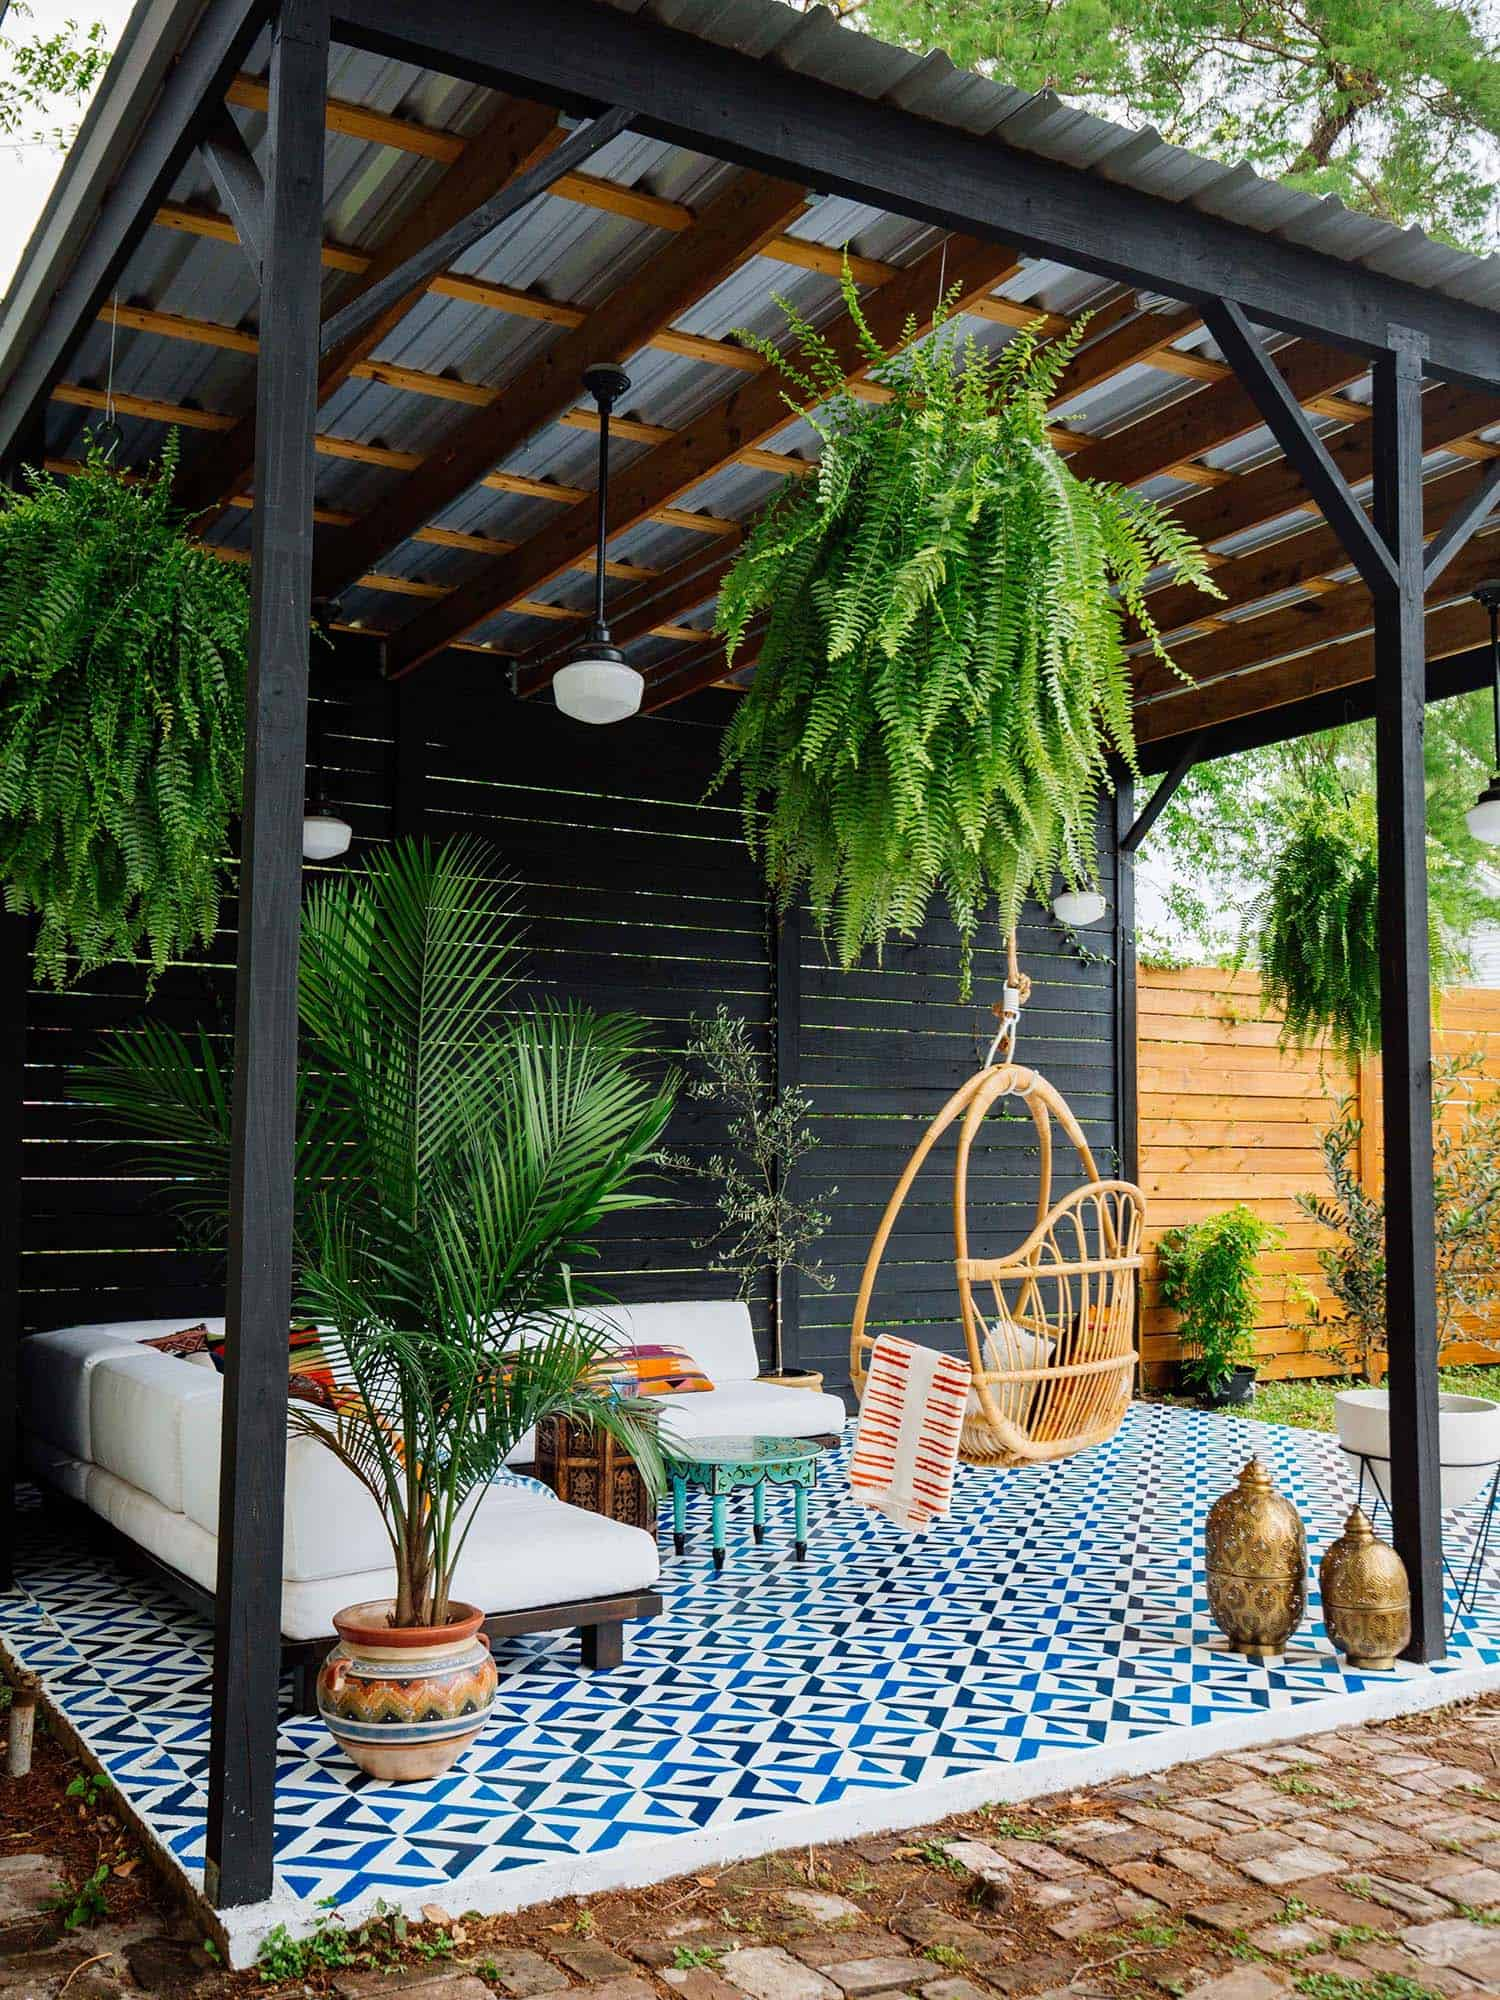 35 Brilliant and inspiring patio ideas for outdoor living ... on backyard gazebo ideas, backyard pool ideas, backyard construction ideas, backyard fence ideas, backyard furniture ideas, backyard seating ideas, retaining wall ideas, small backyard ideas, garage ideas, driveway ideas, backyard sunroom ideas, backyard hot tub ideas, backyard landscape ideas, fireplace ideas, backyard pergola ideas, inexpensive backyard ideas, backyard courtyard ideas, backyard shed ideas, backyard concrete ideas, deck ideas,